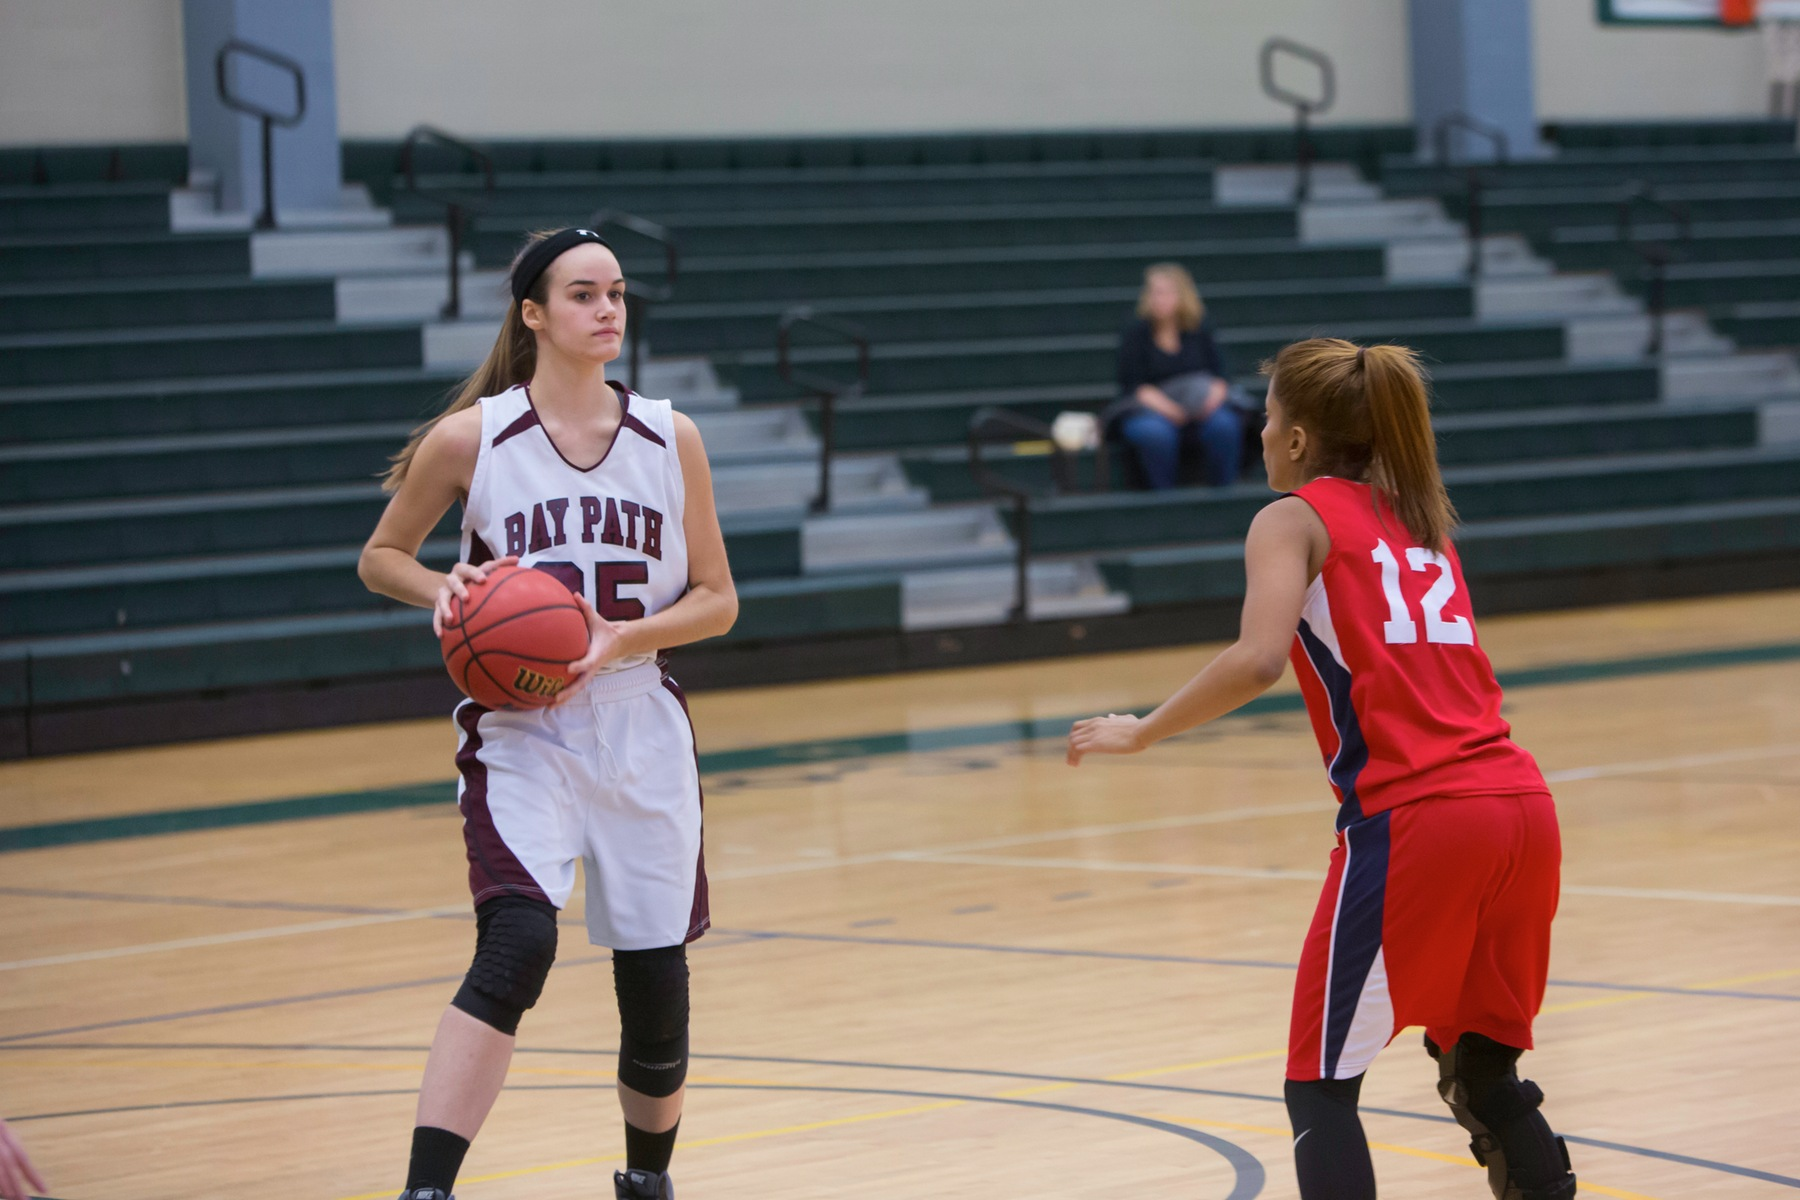 Wildcats Fall 60-53 to NECC Opponents Lesley Lynx